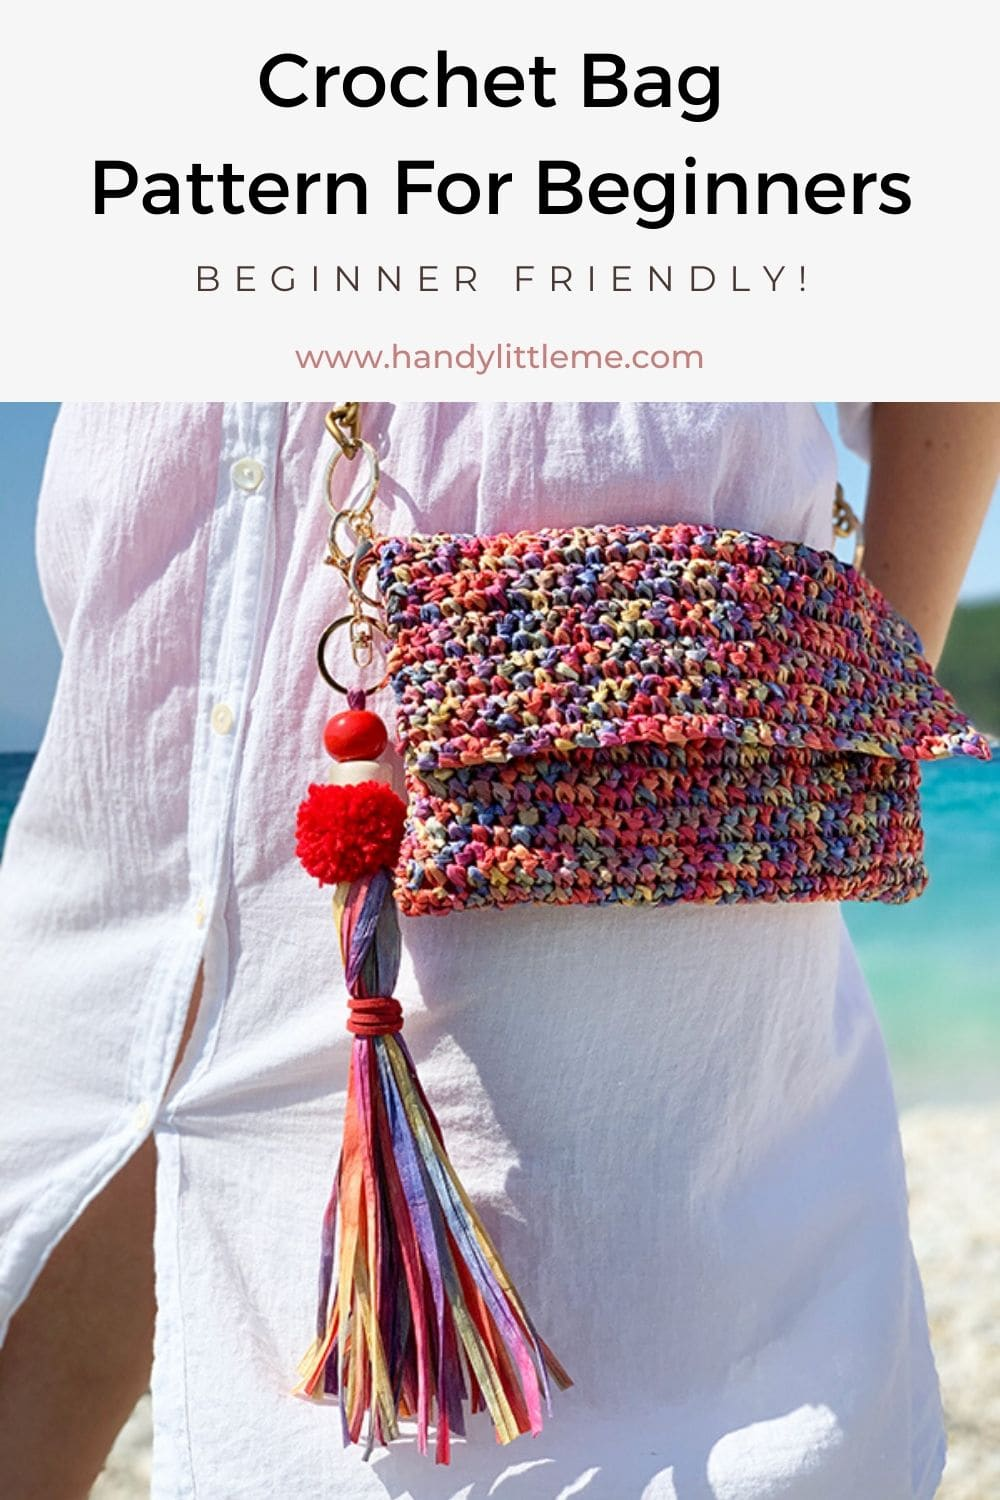 Crochet bag pattern for beginners